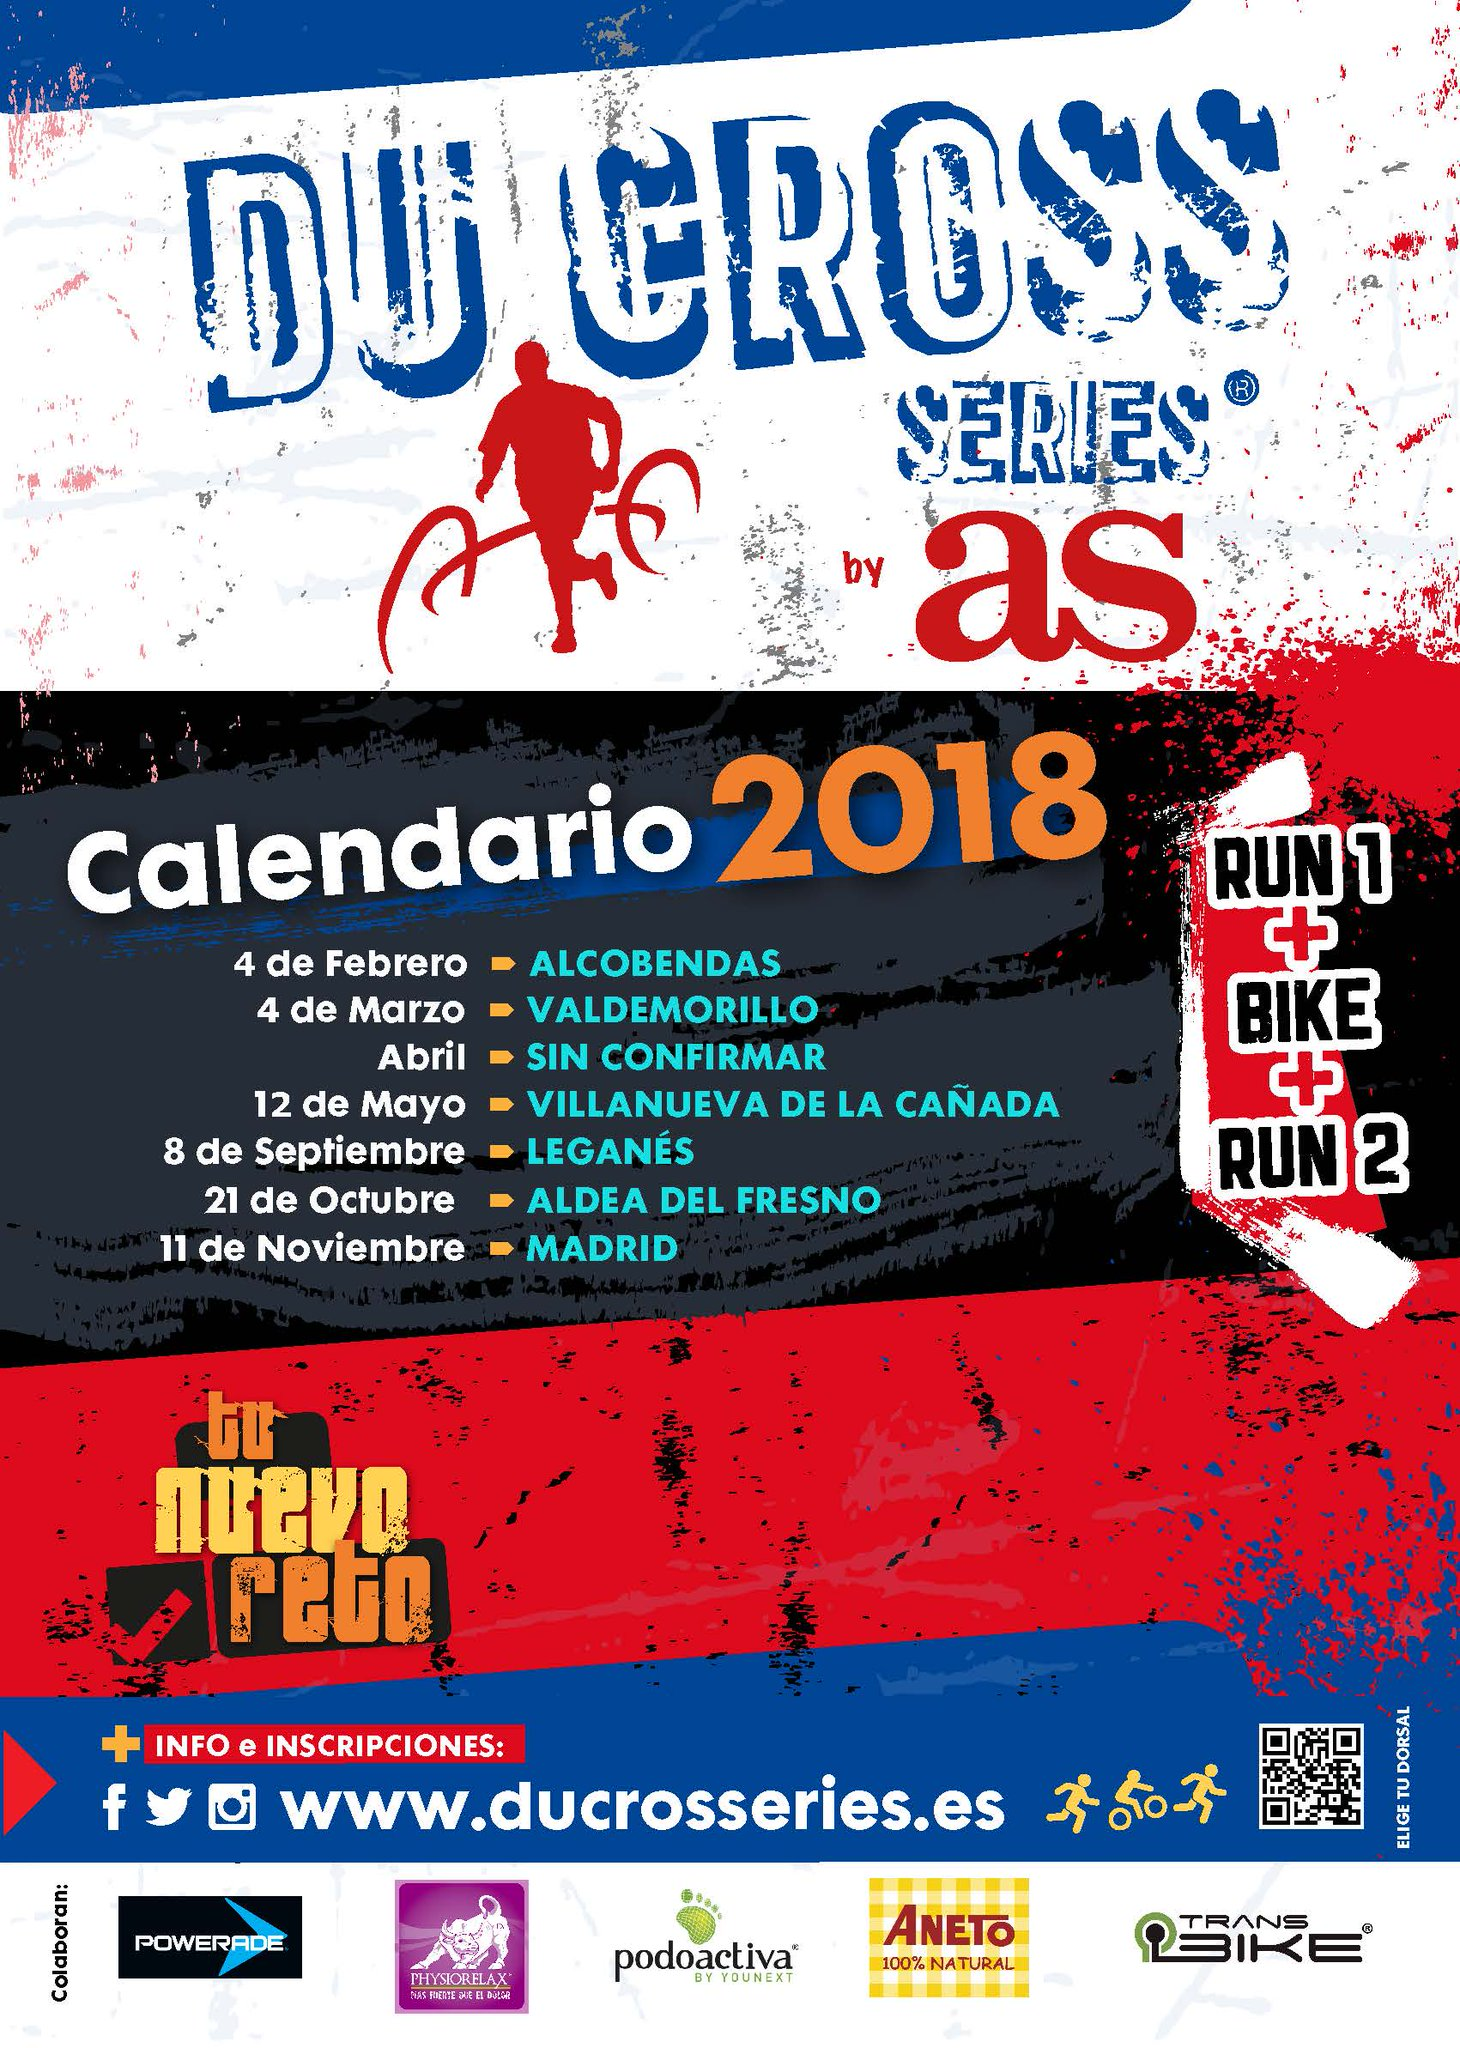 Ya está aquí el calendario de Du Cross Series 2018